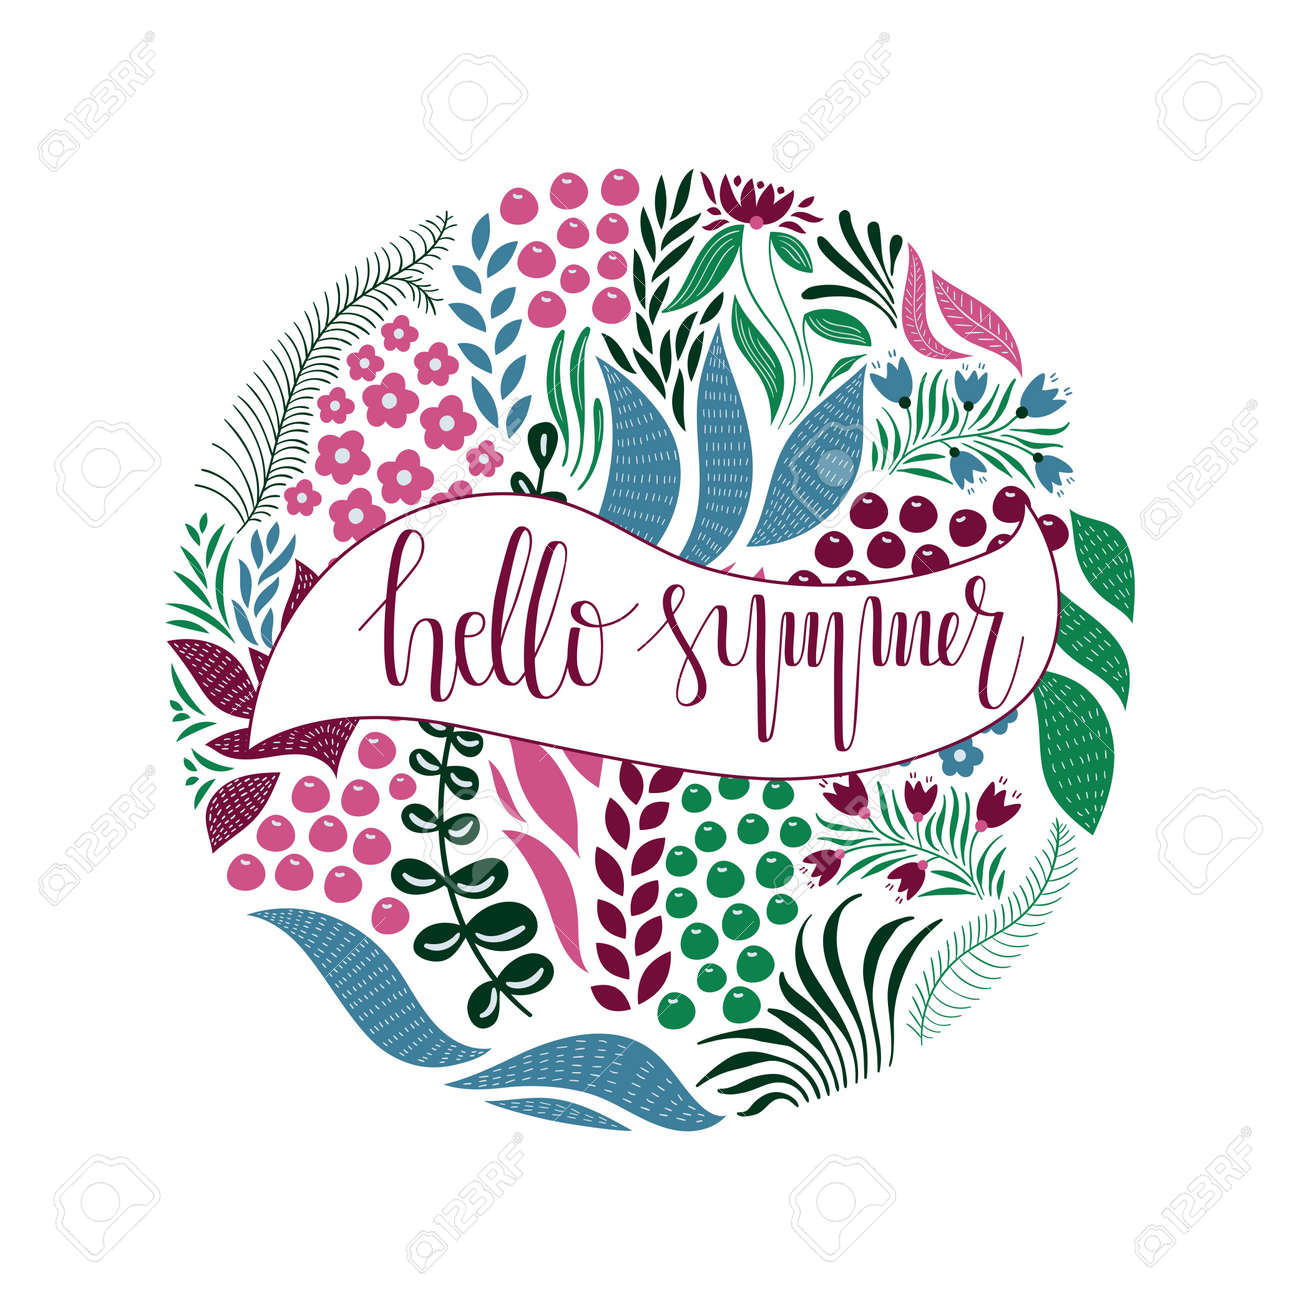 Vector Circle Pattern with Flowers, Berries, and Leaves. Hand Lettering Text. Hello Spring. Spring Greeting Card Design - 136245745